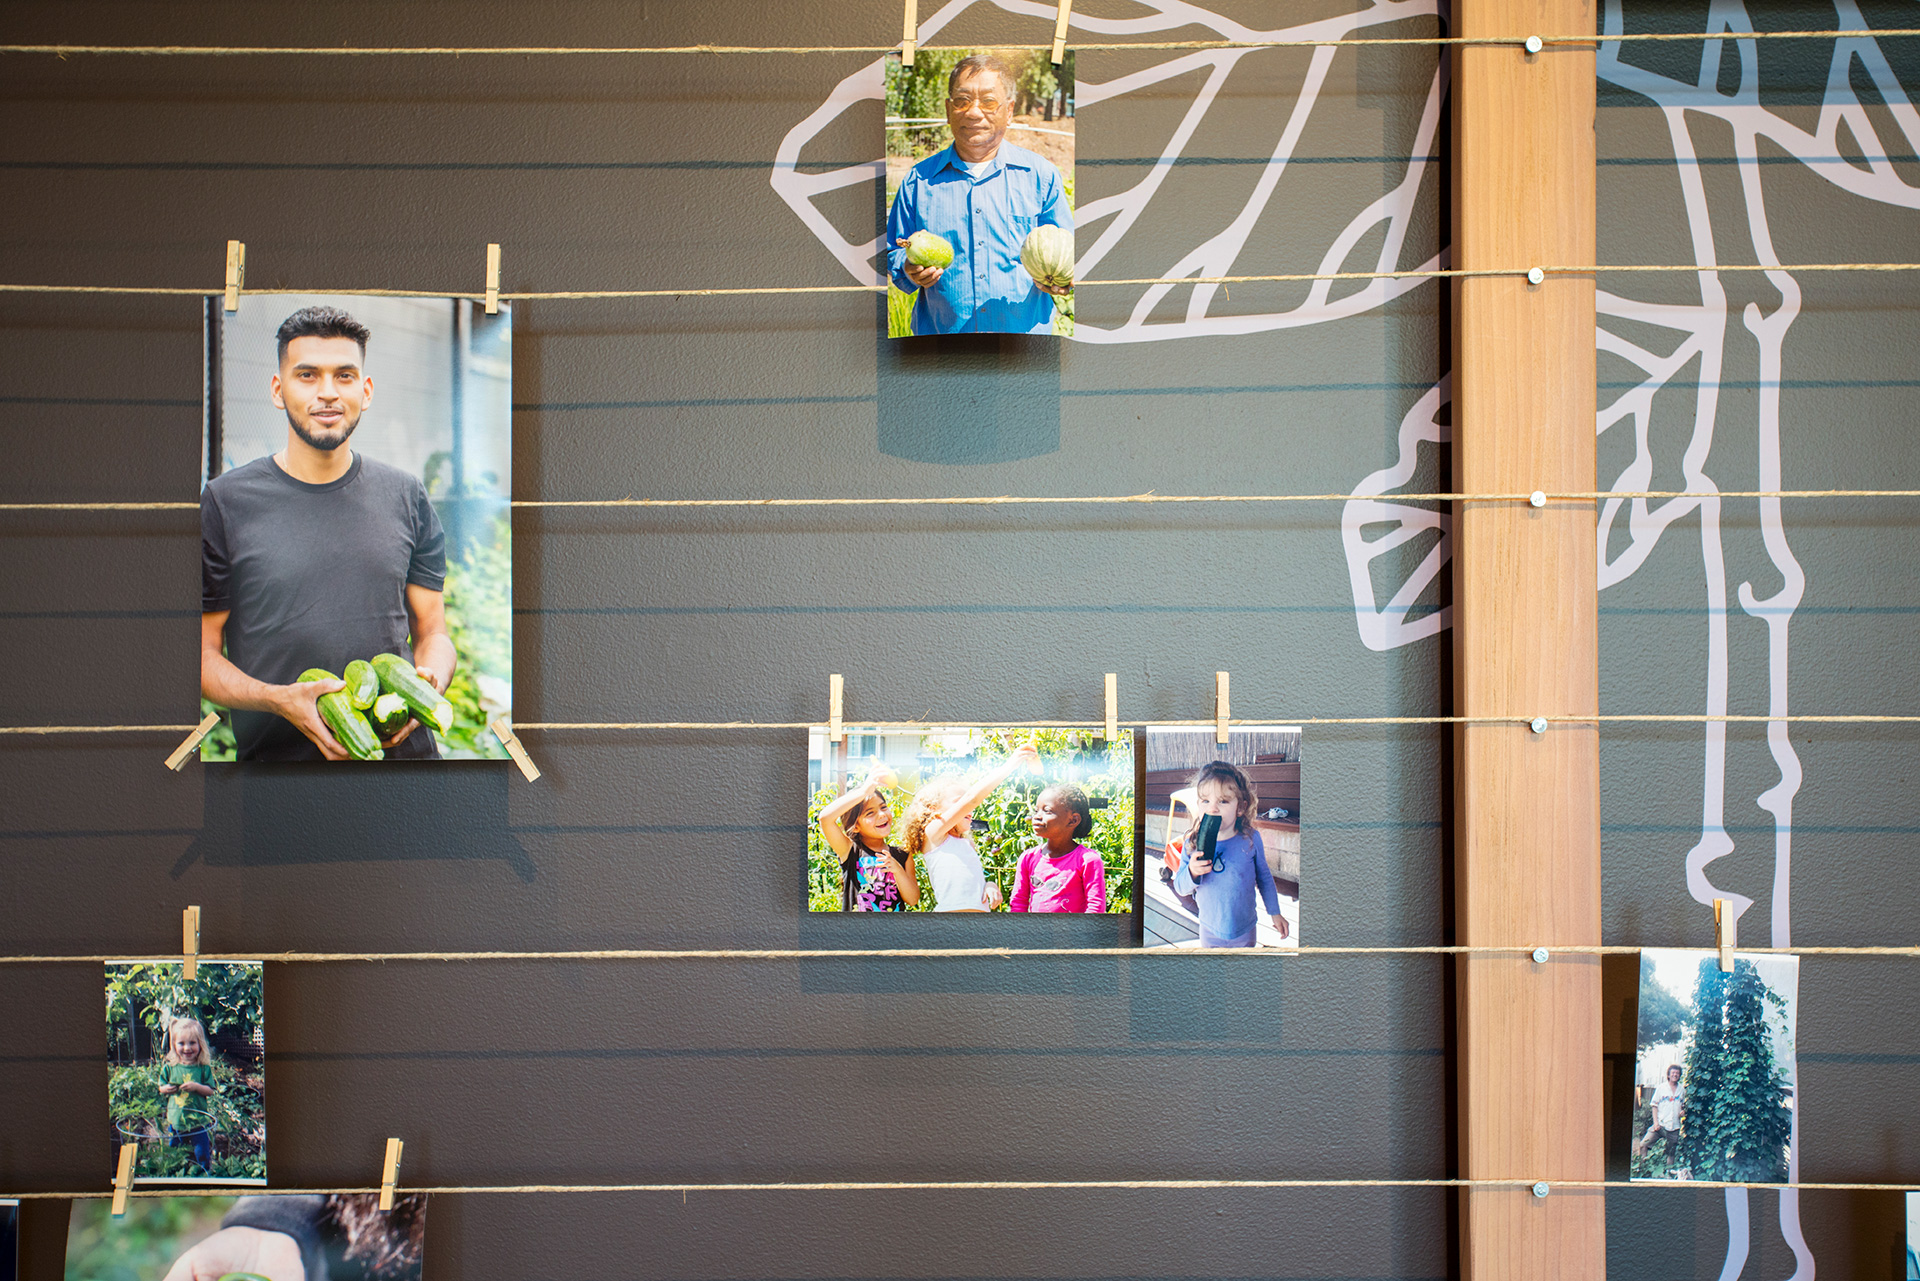 Visitors can send photos of themselves with their crops to be included on the wall.